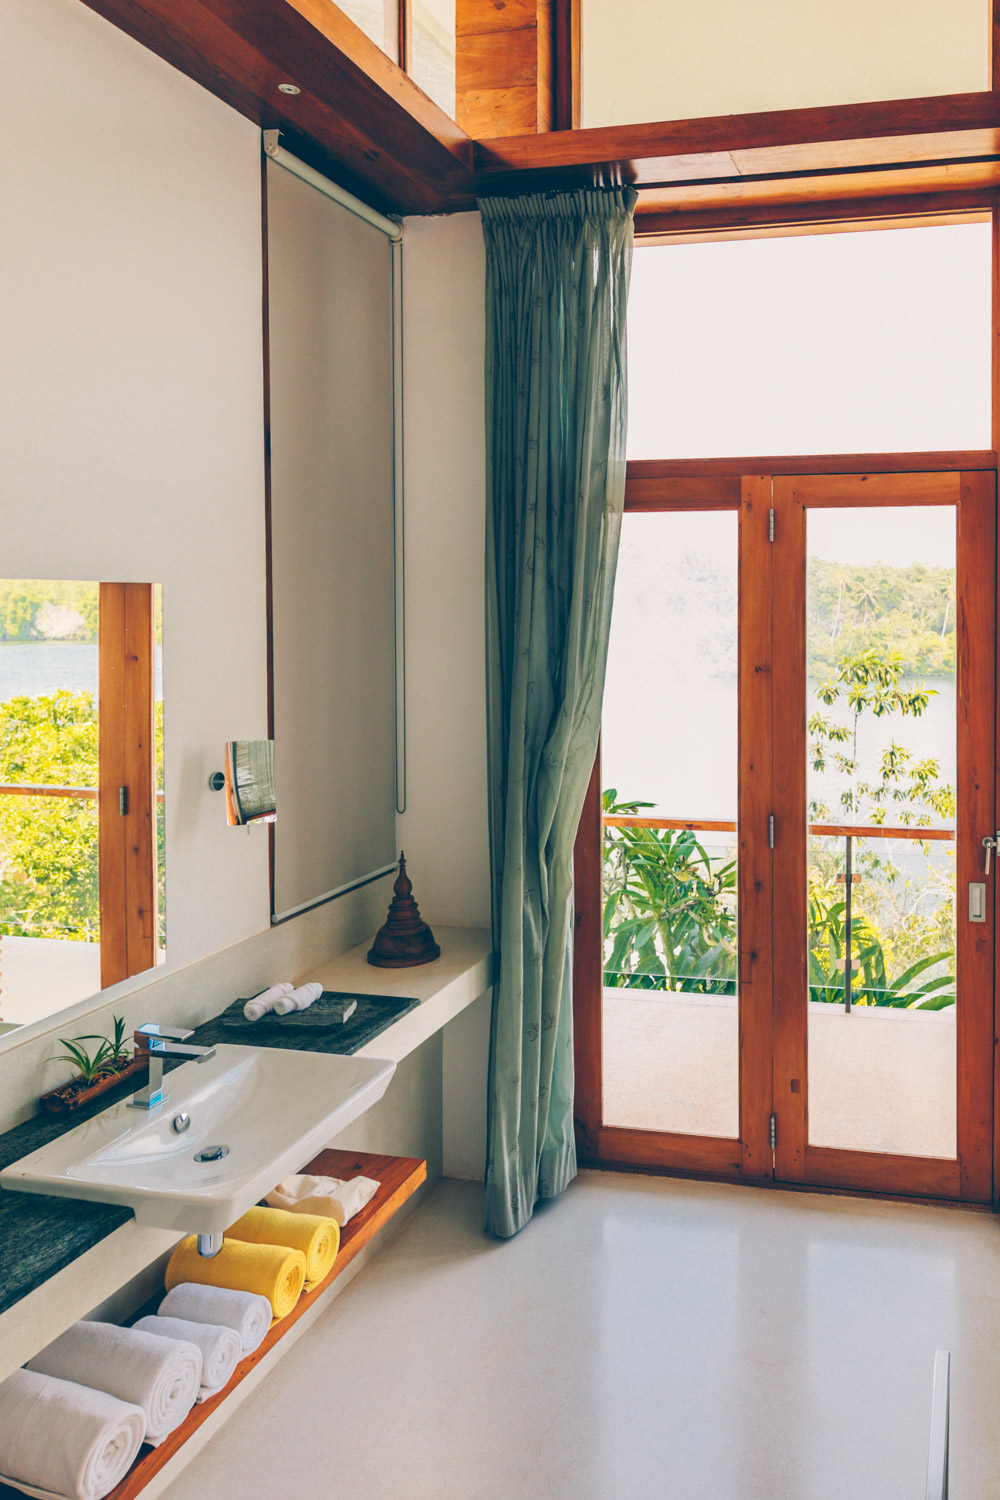 Heaven on earth in sri lanka tri hotel review black for Window design sri lanka